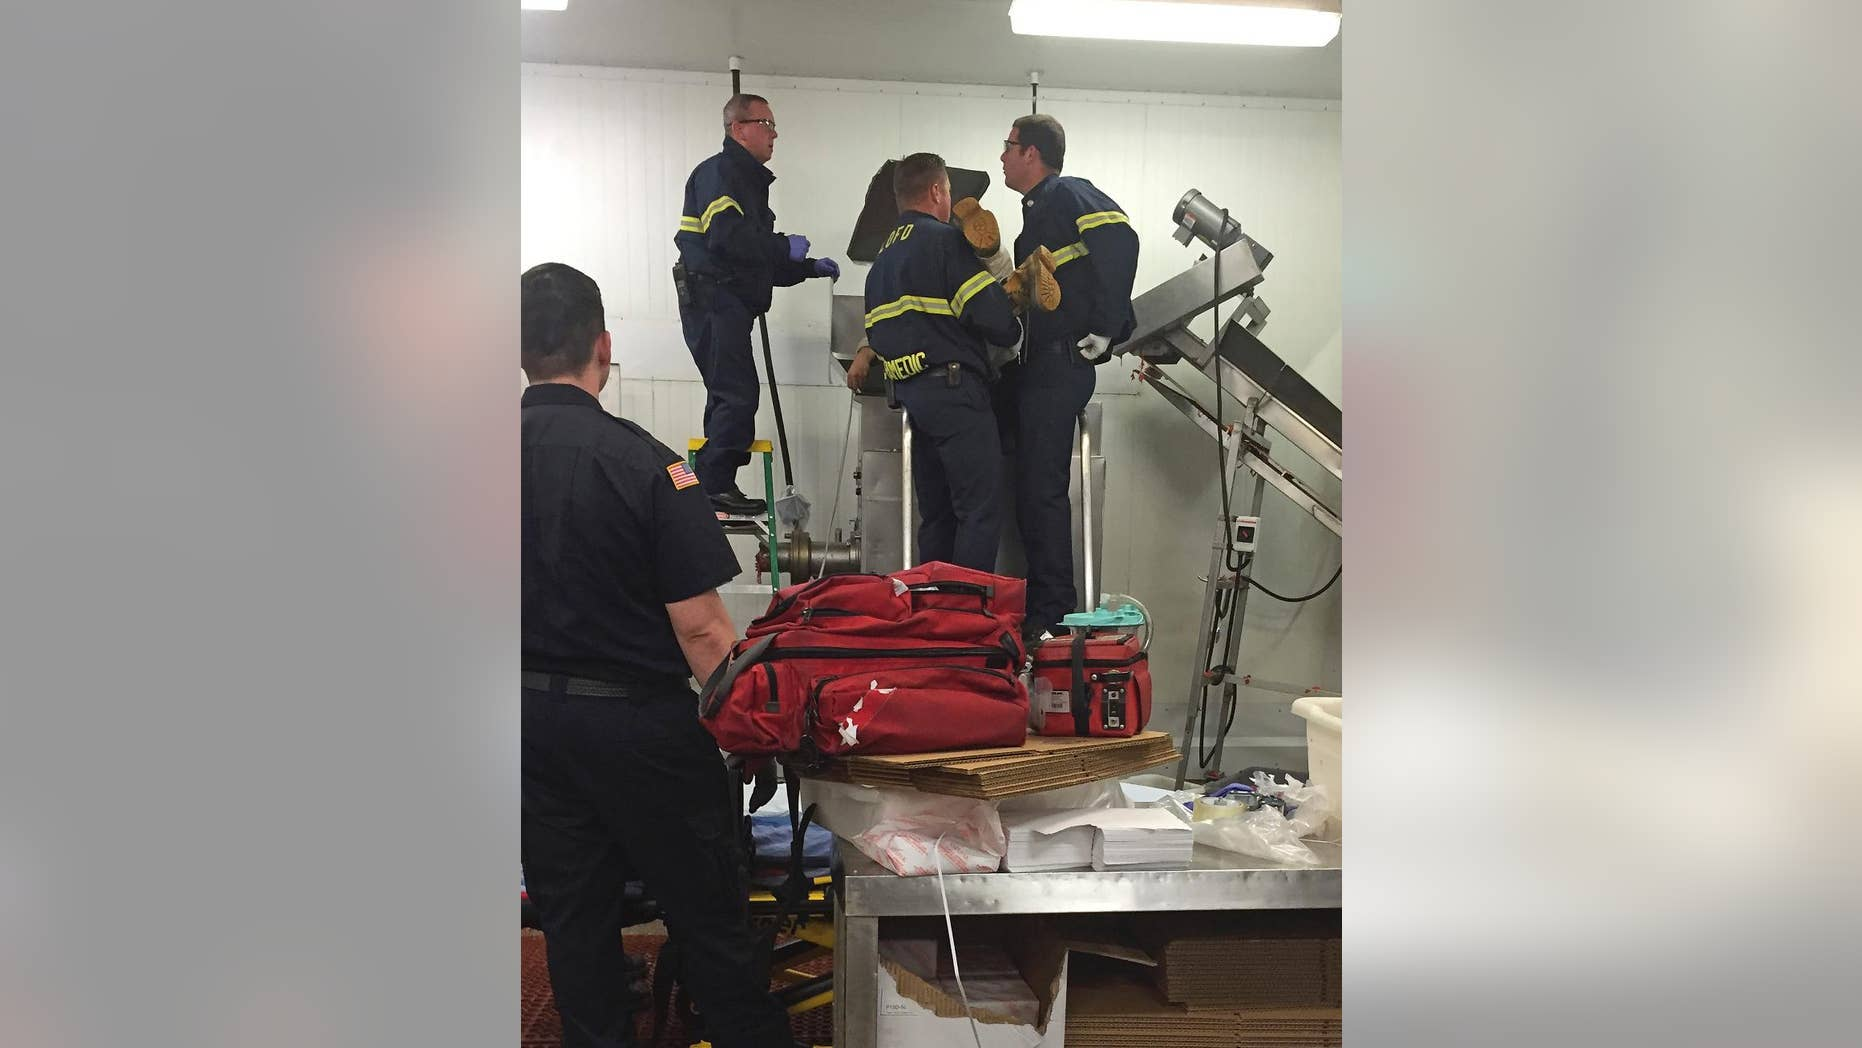 In this July 16, 2015 photo provided by the San Luis Obispo Fire Dept., a worker is assisted by fire personnel after his sleeve was caught in a meat grinder in San Luis Obispo, Calif. Fire officials say the employee at a wholesale California grocer is lucky to be alive after getting caught in a running meat grinder. The worker's sleeve got caught and was being pulled in when a co-worker heard his screams and shut the machine off. Fire crews had to pry the machine open to get the worker out who suffered a broken arm. (Garret Olson/San Luis Obispo Fire Dept. via AP)